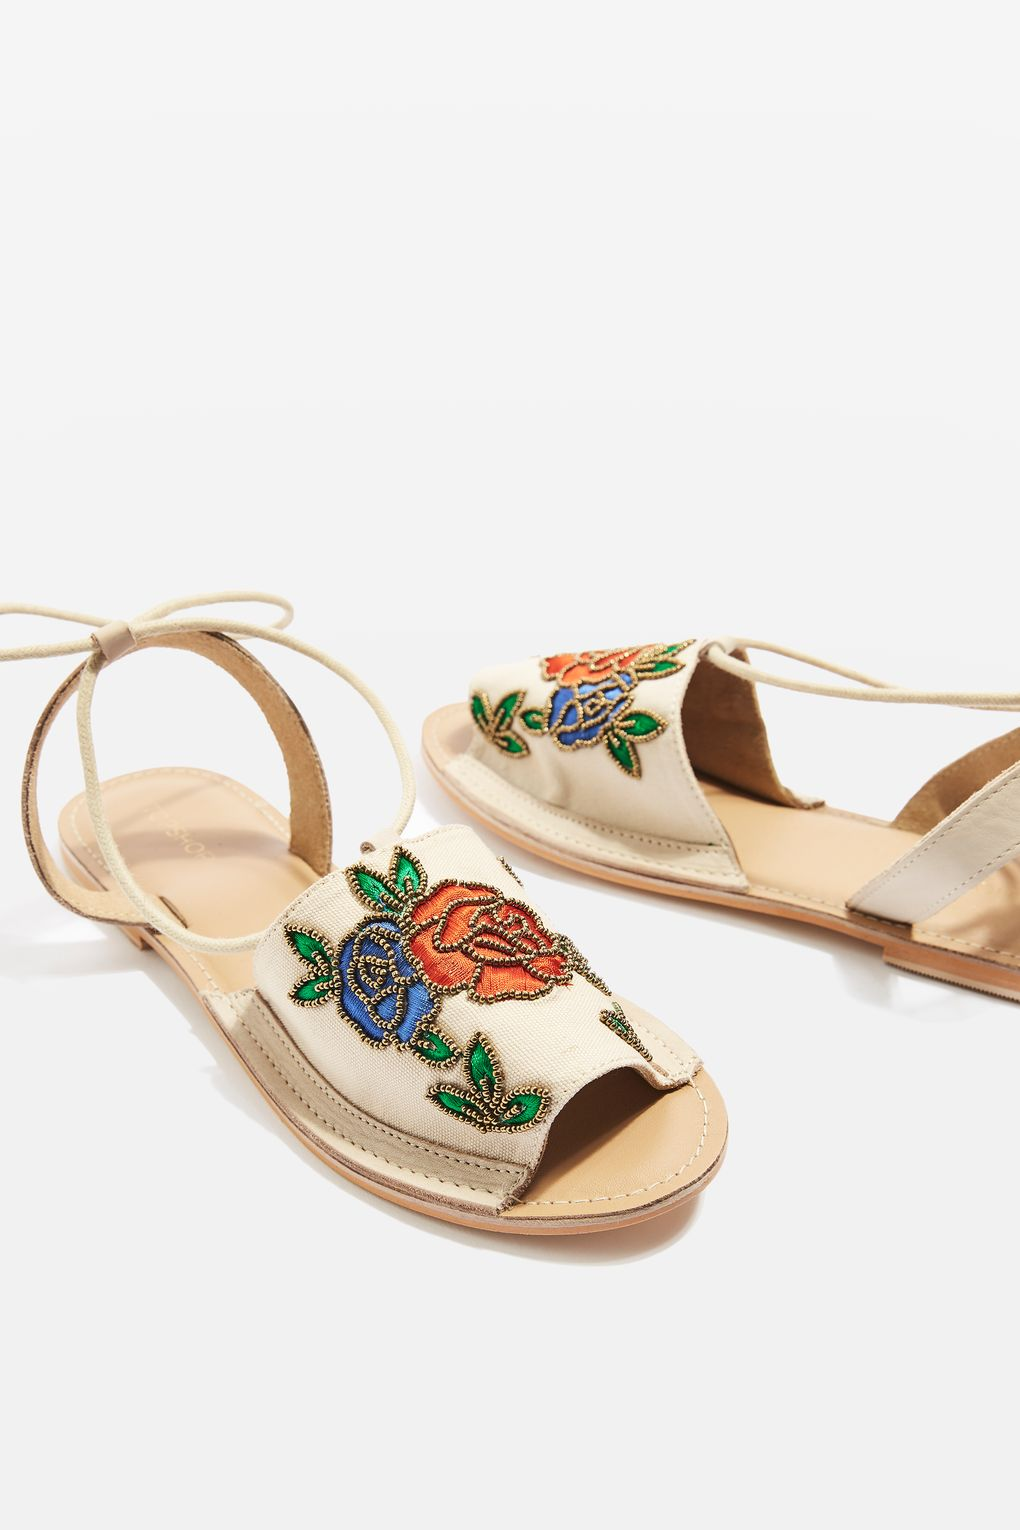 Topshop HALLE embroidered sandals